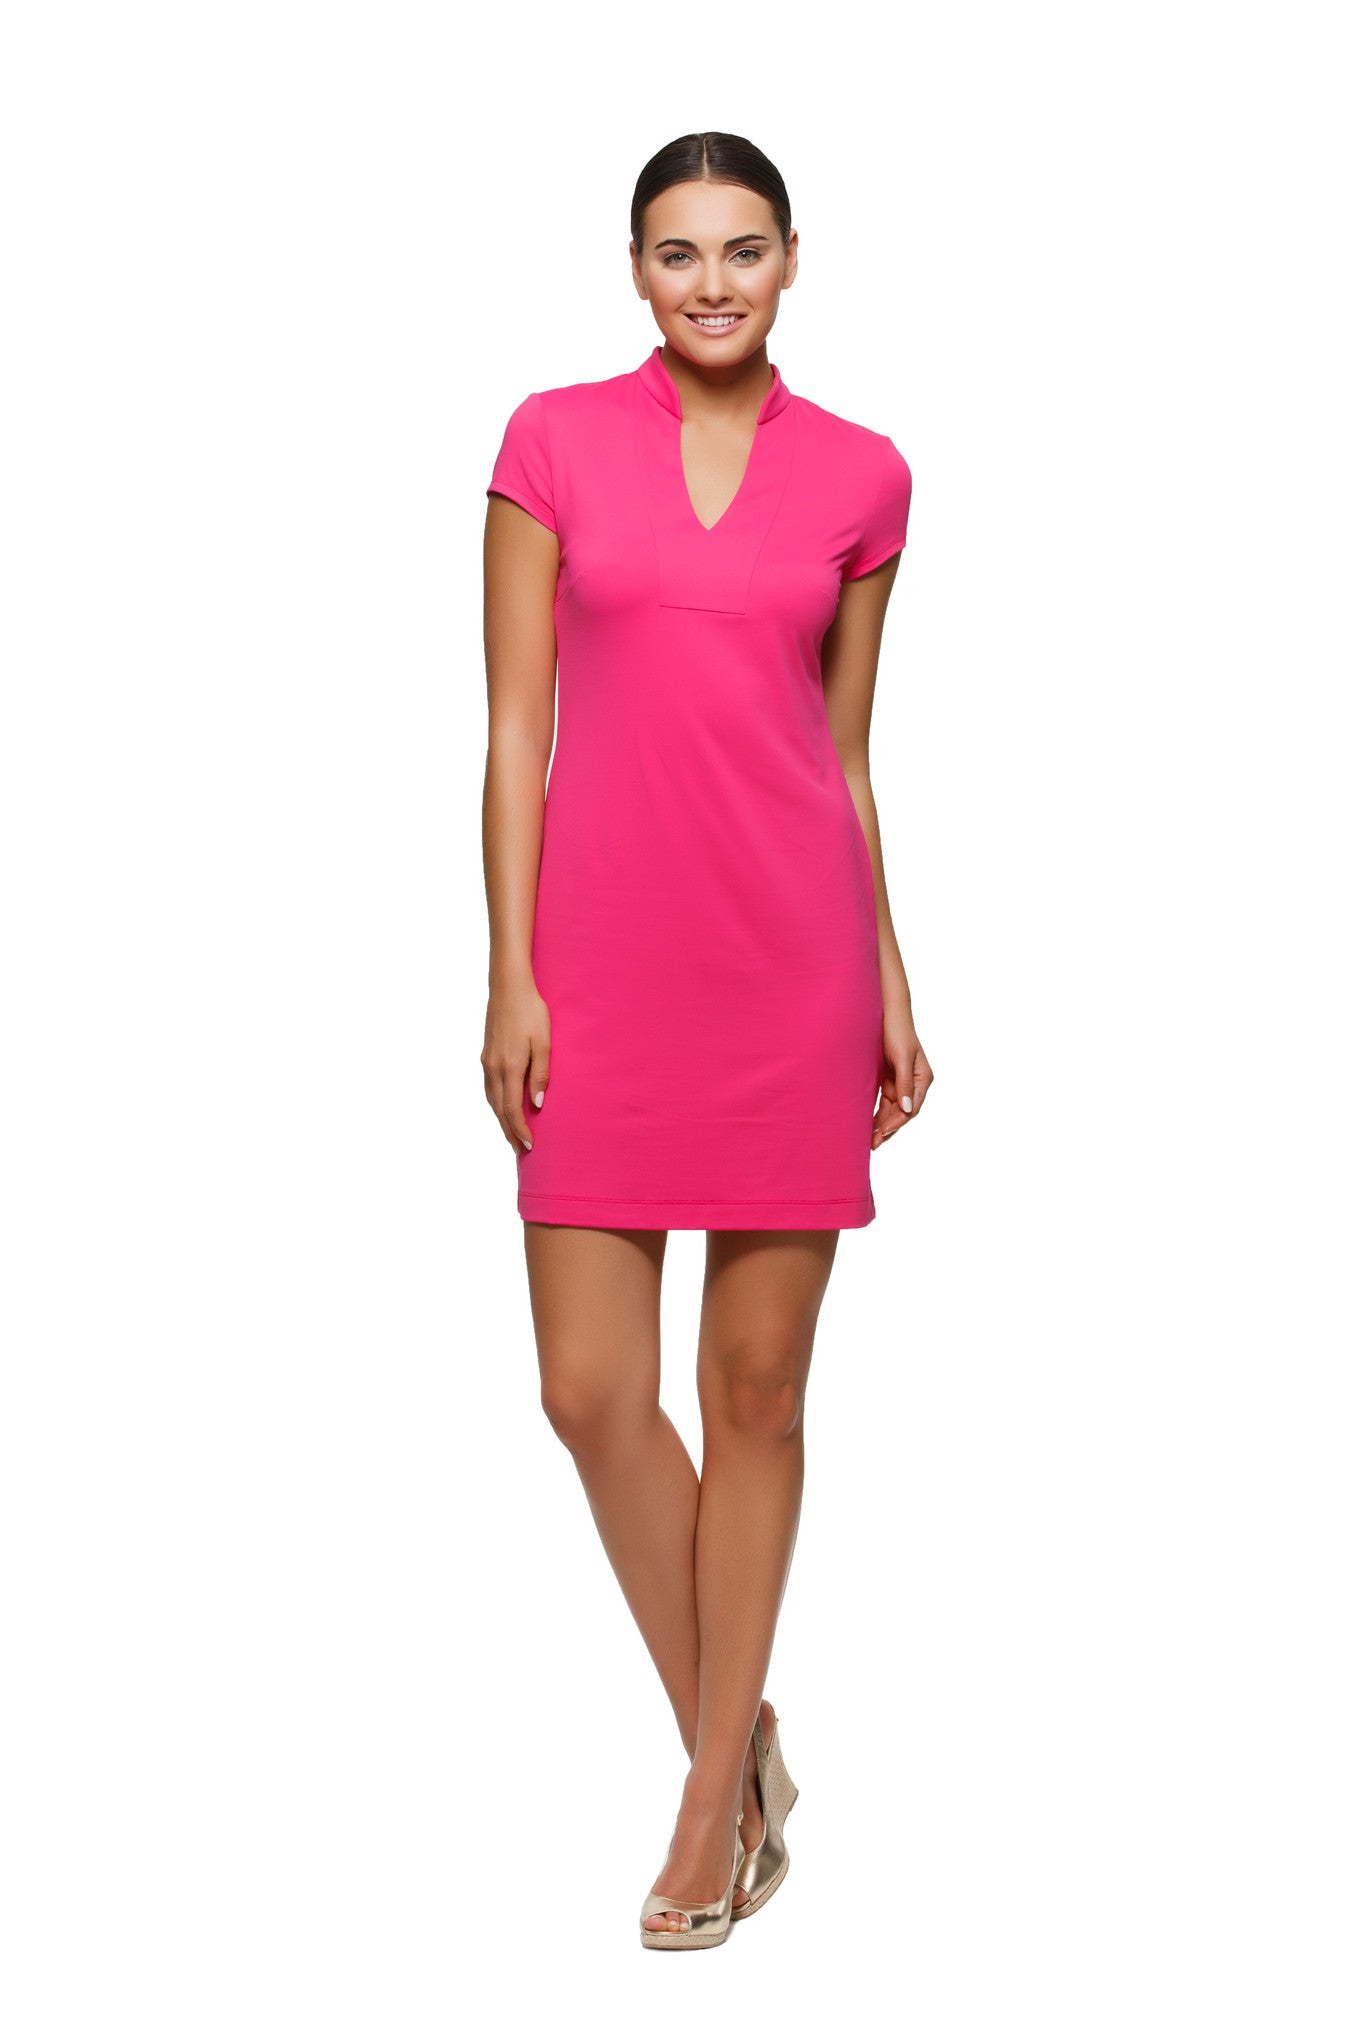 Parker Dress in Pink - Rulon Reed